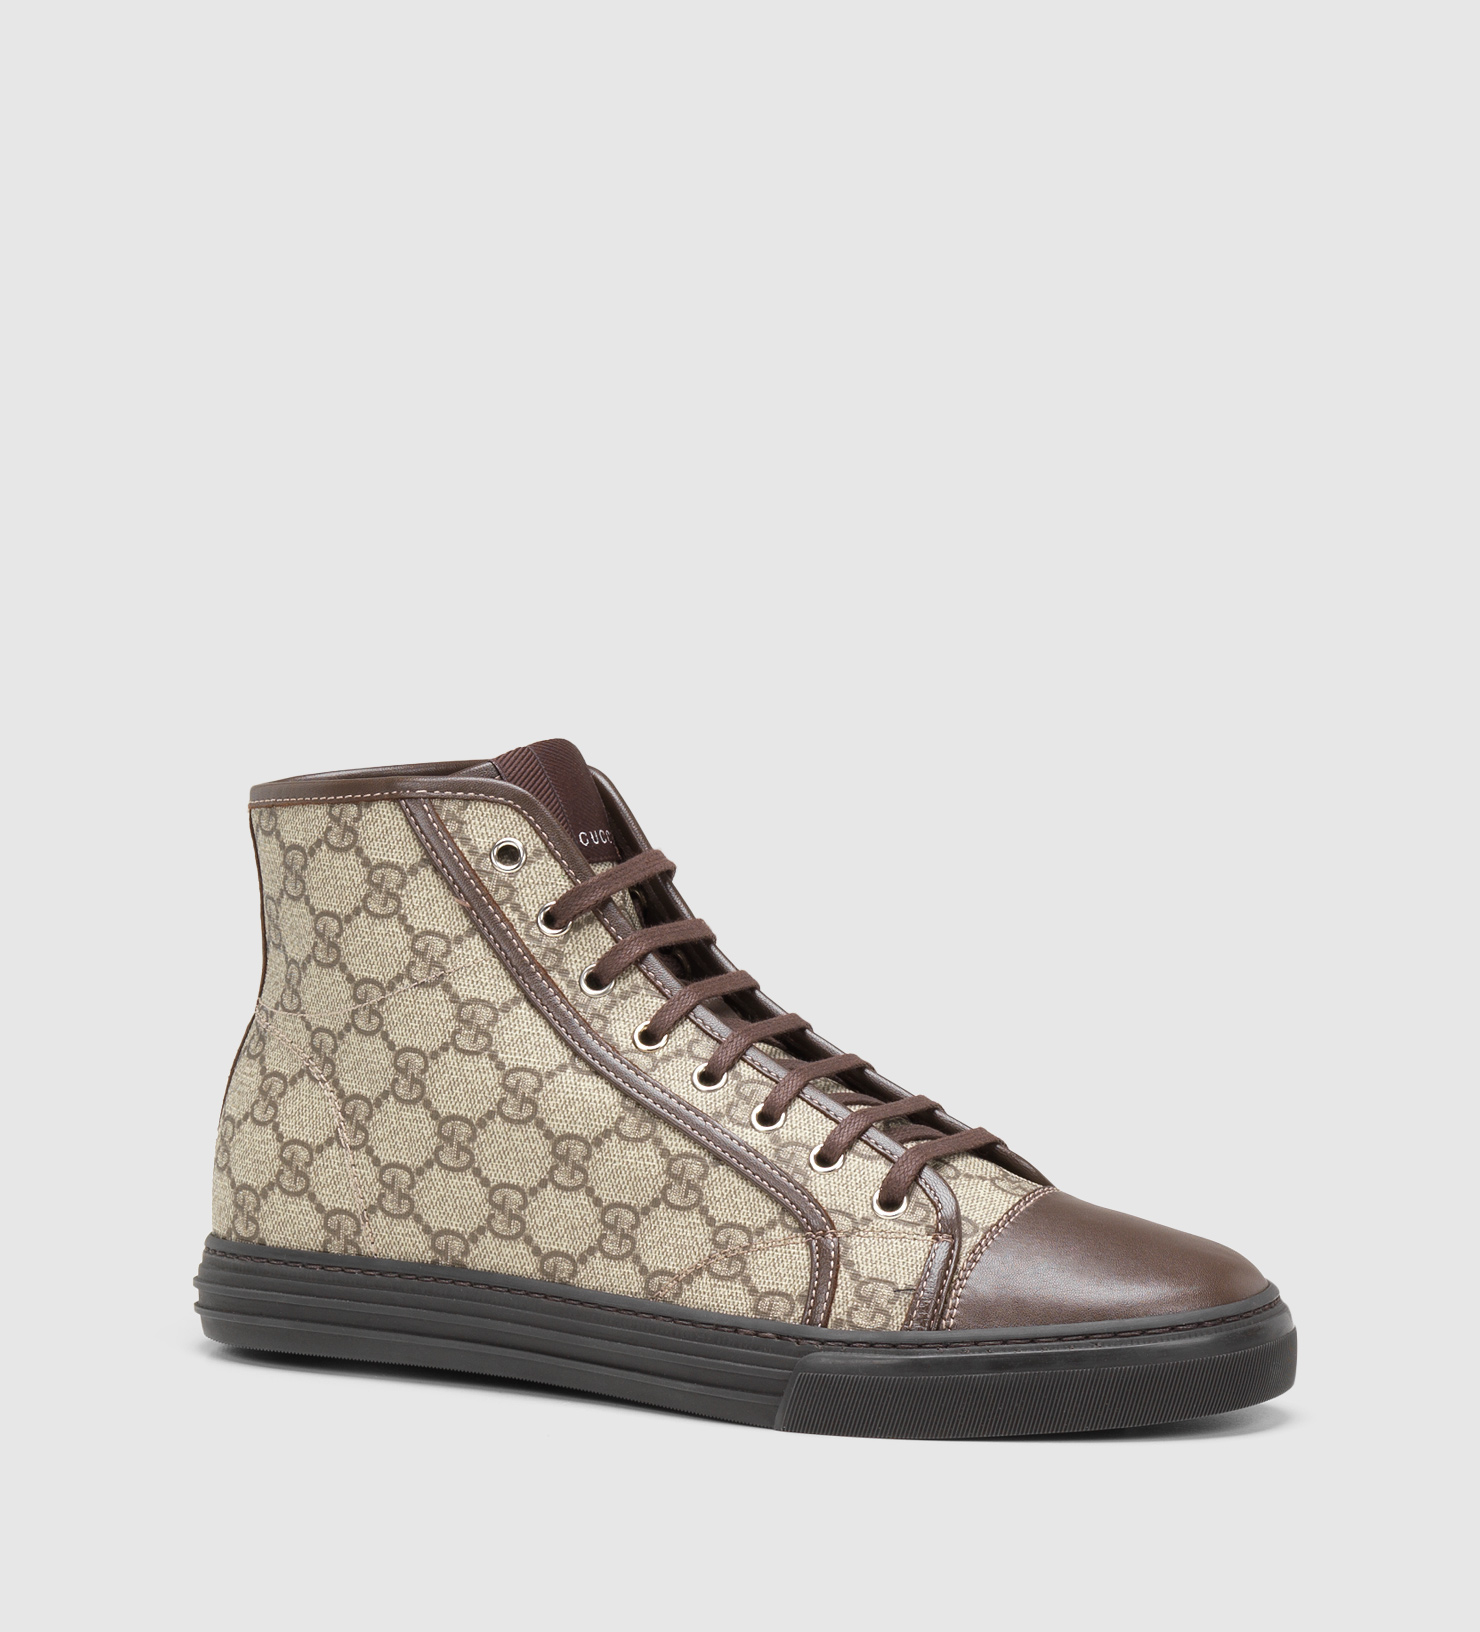 Gucci Hi-top Lace-up Sneaker in Brown for Men